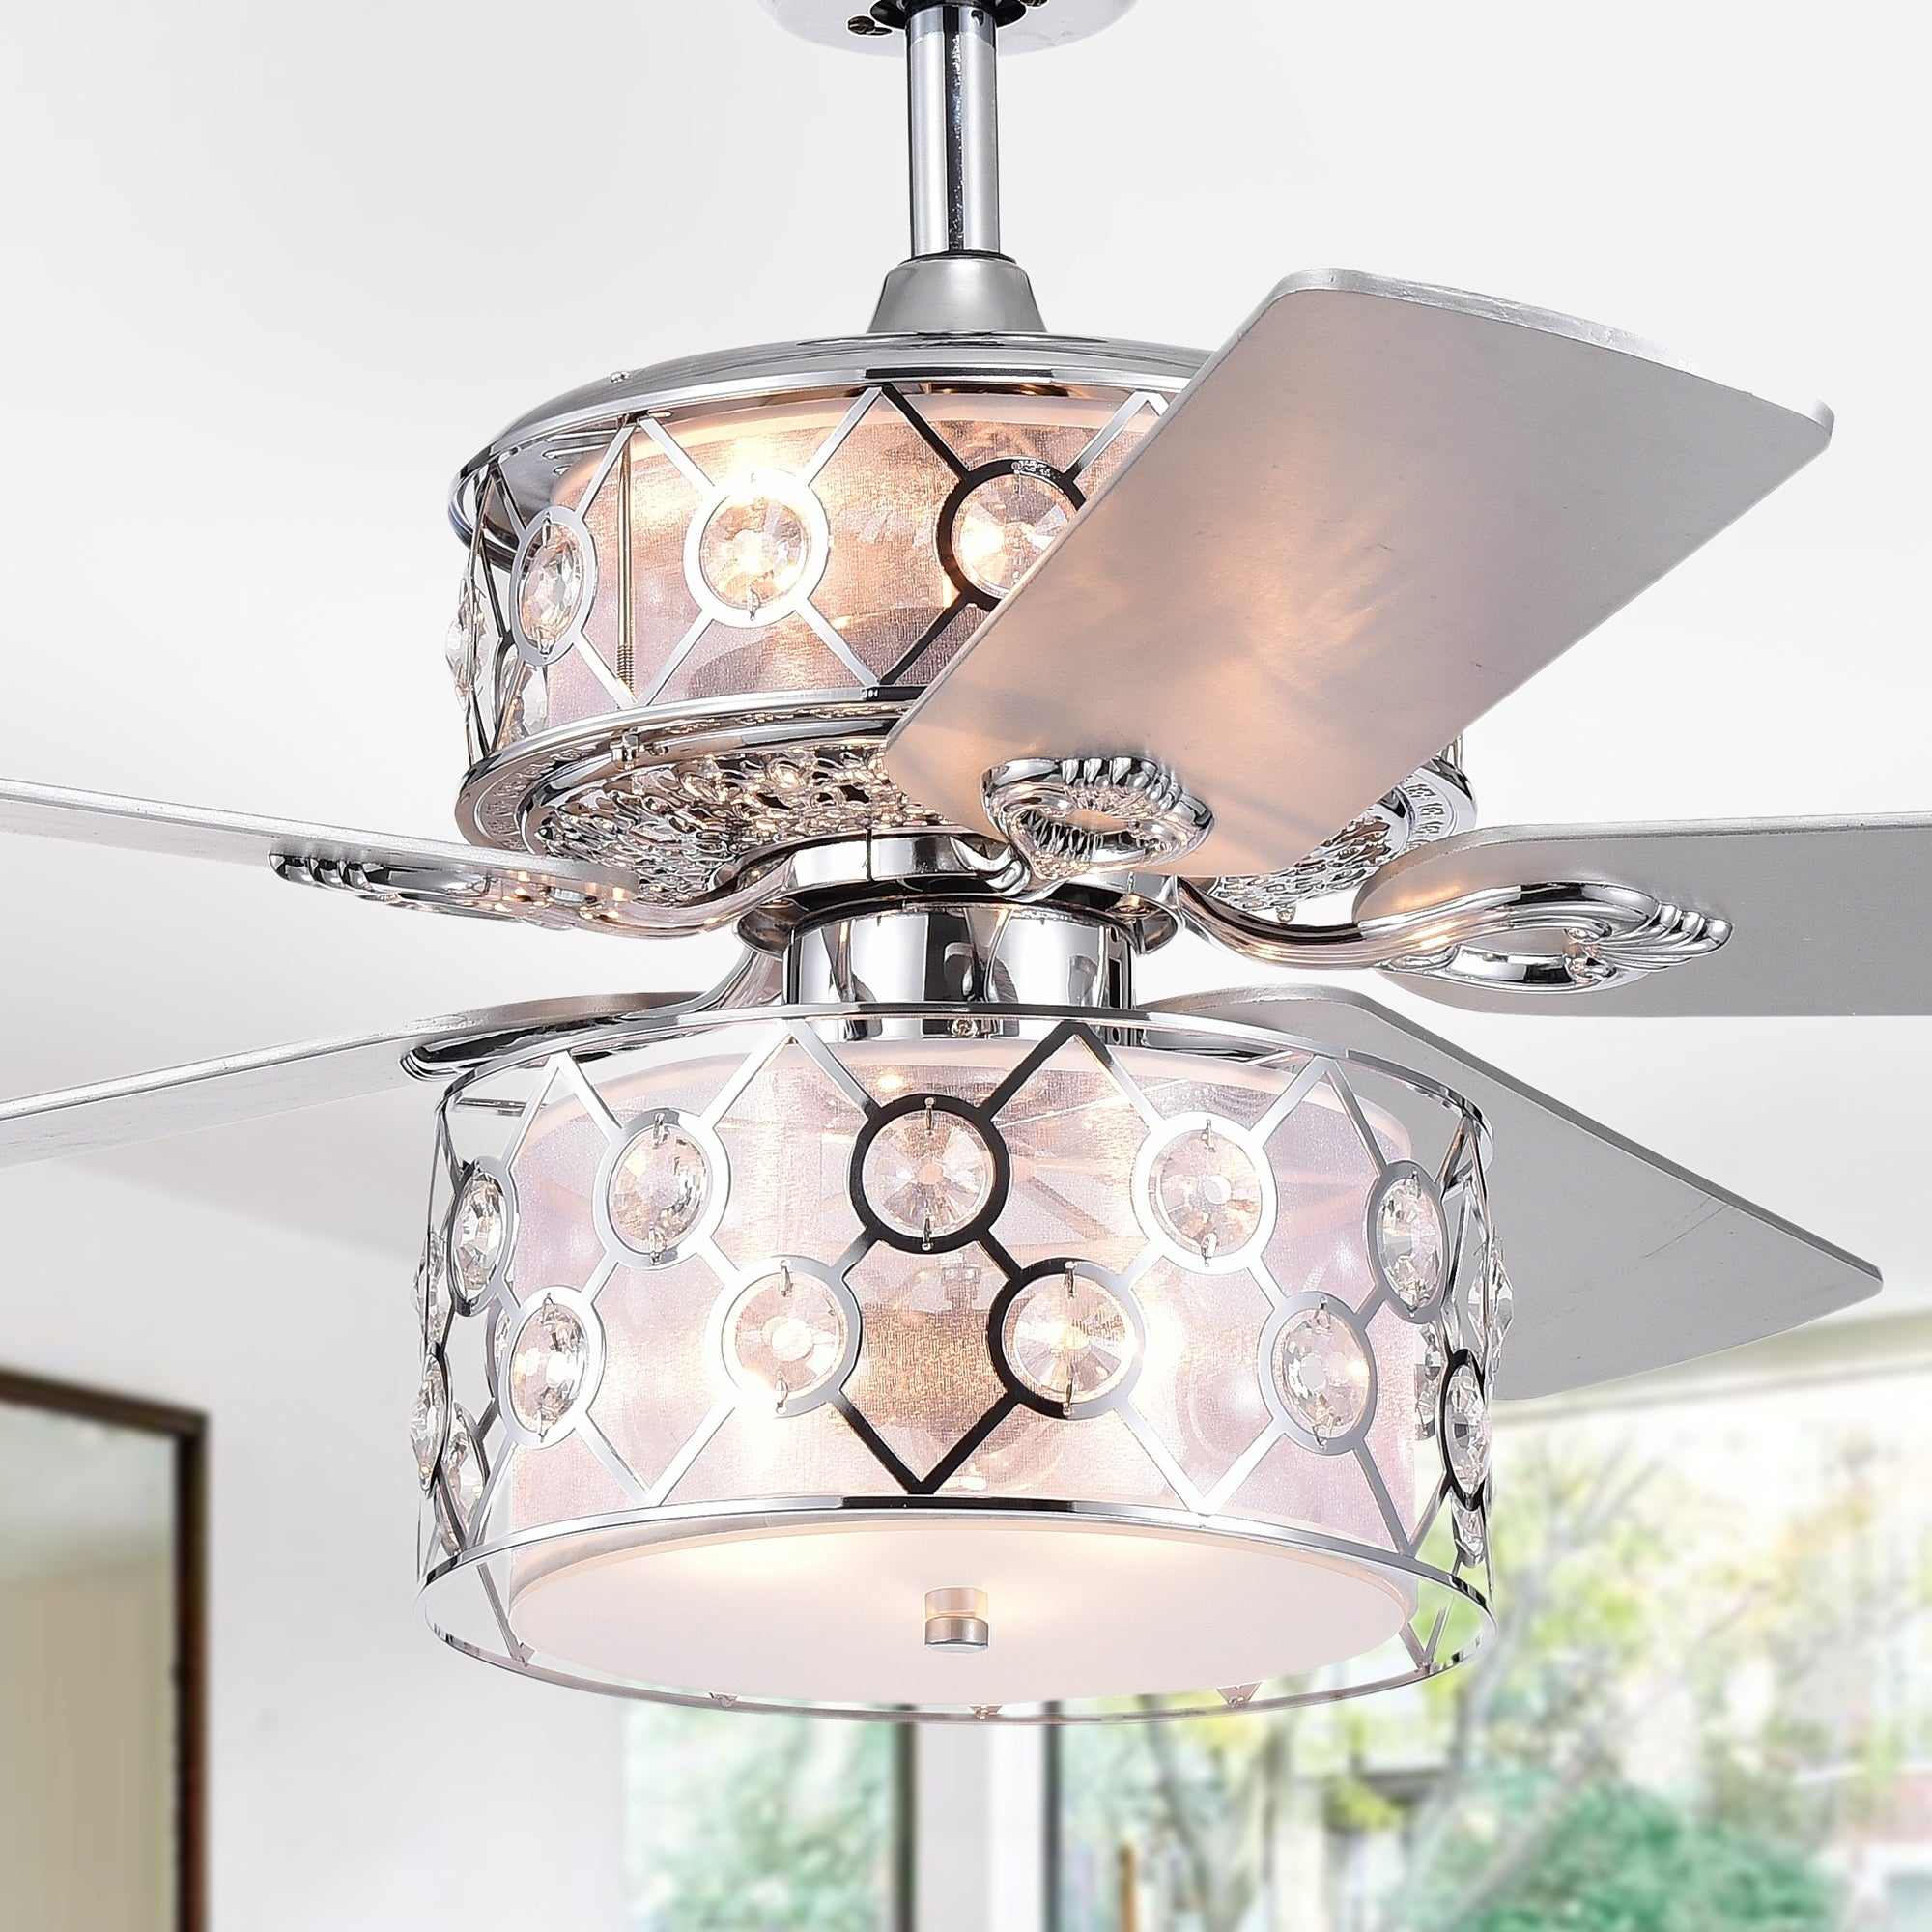 Shop Black Friday Deals On Rillome Chrome 52 Inch Dual Lighted Ceiling Fan With Layered Fabric And Metal Drum Lamps Incl Remote 2 Color Option Blades On Sale Overstock 26960996